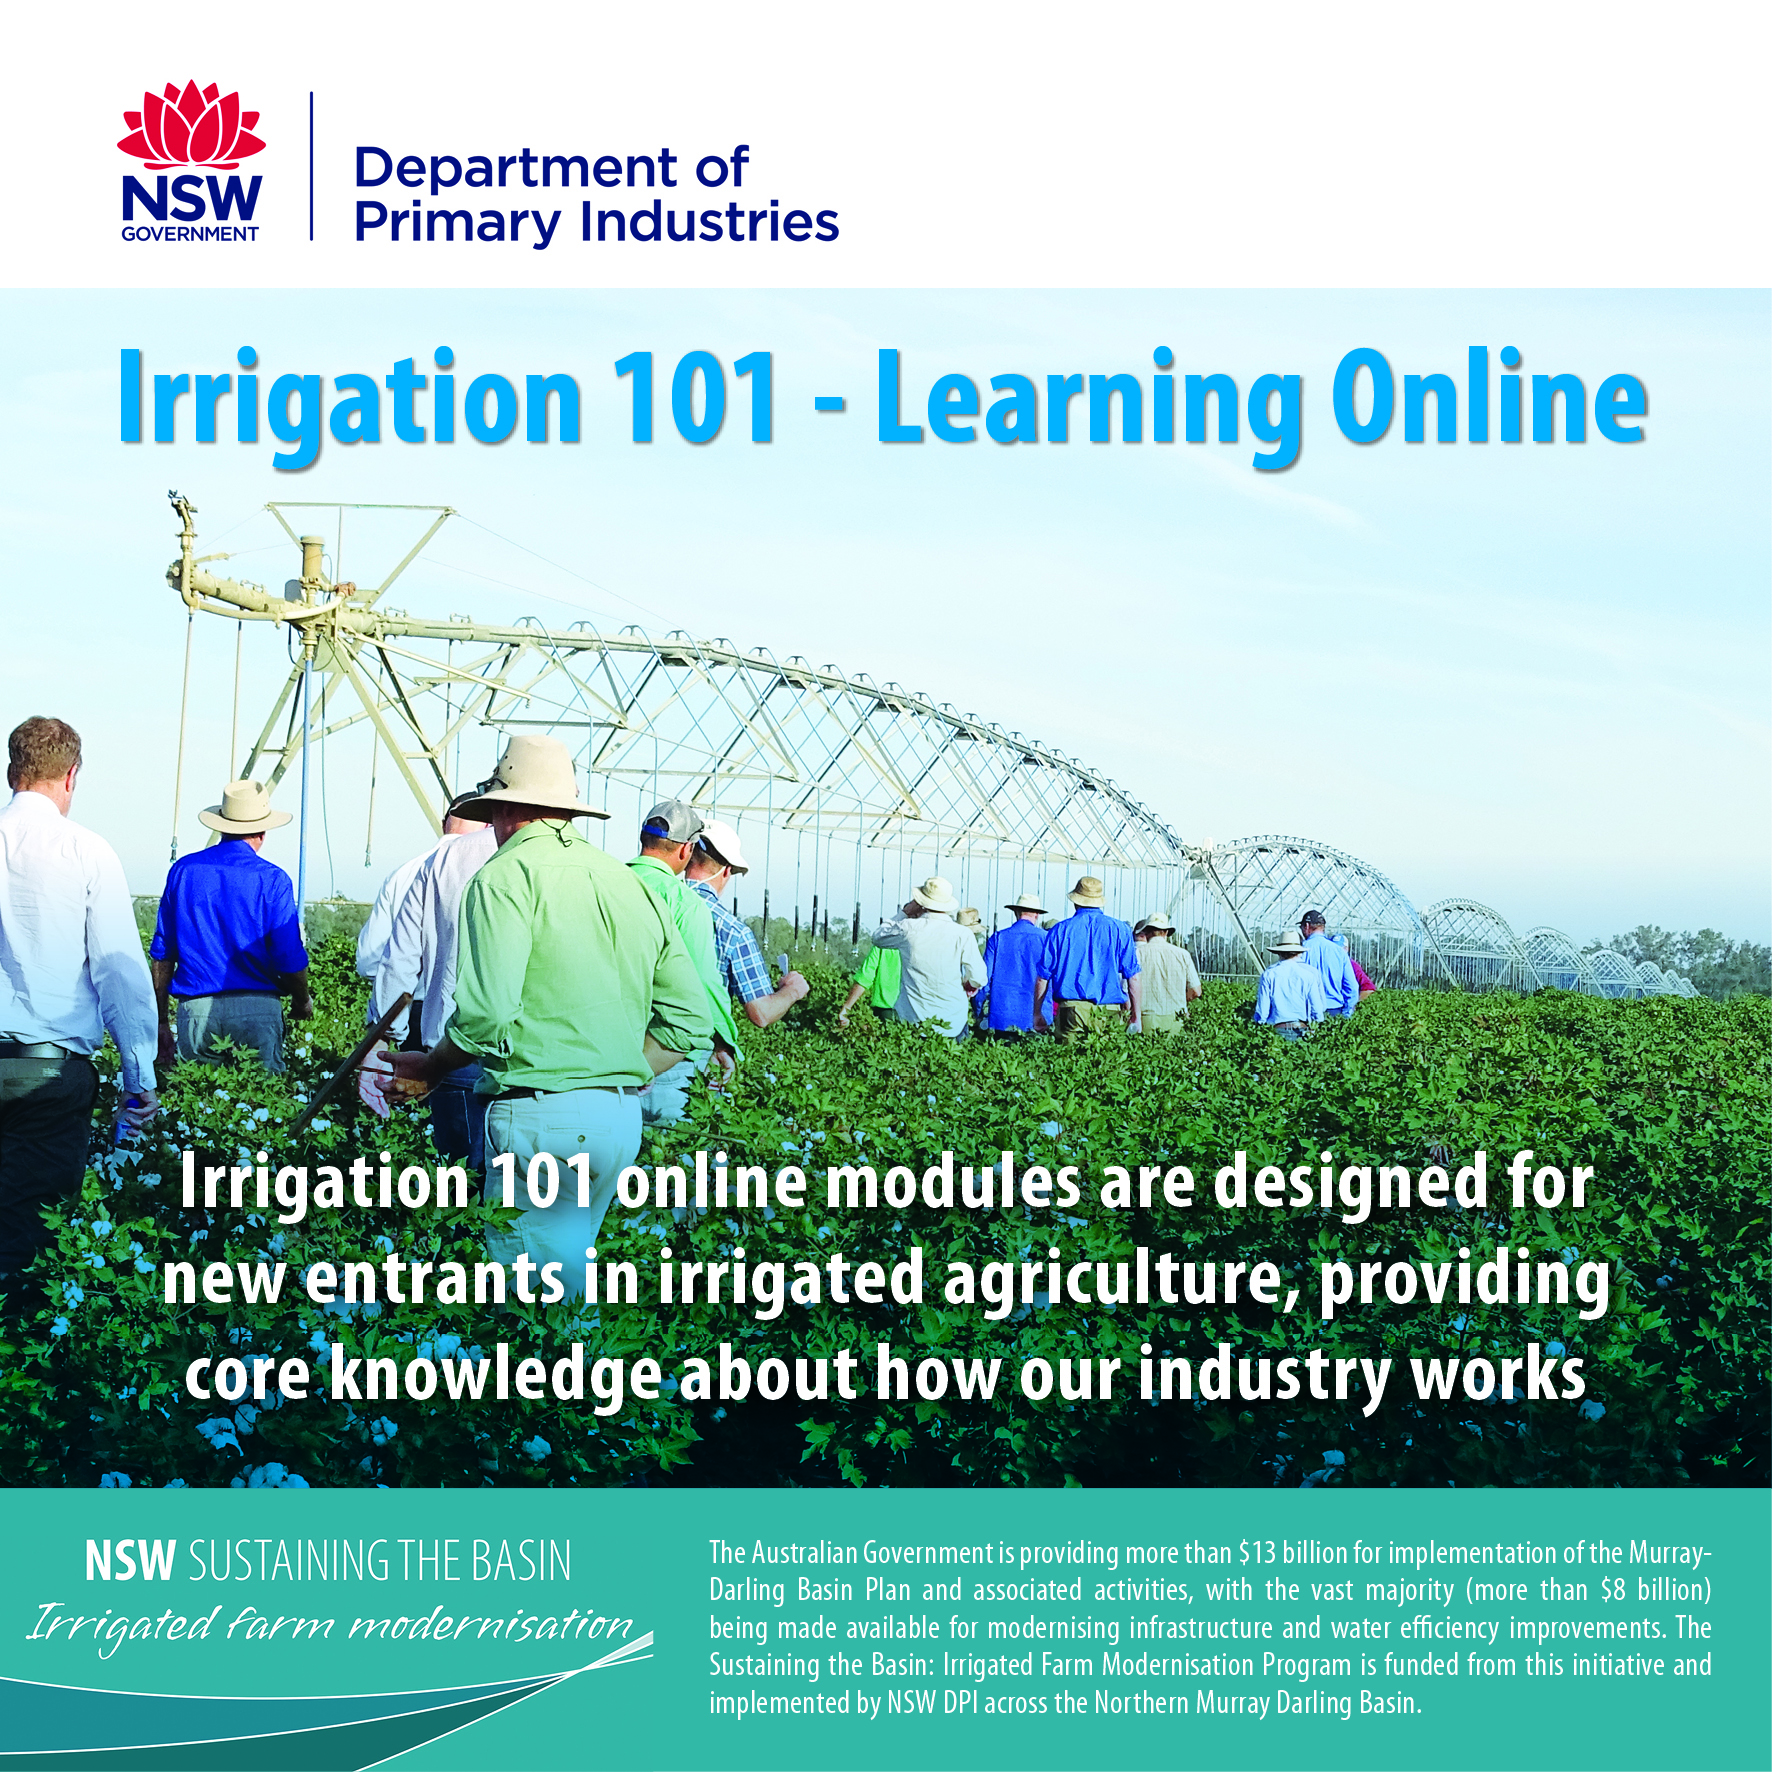 Irrigation 101 Online Learning Modules